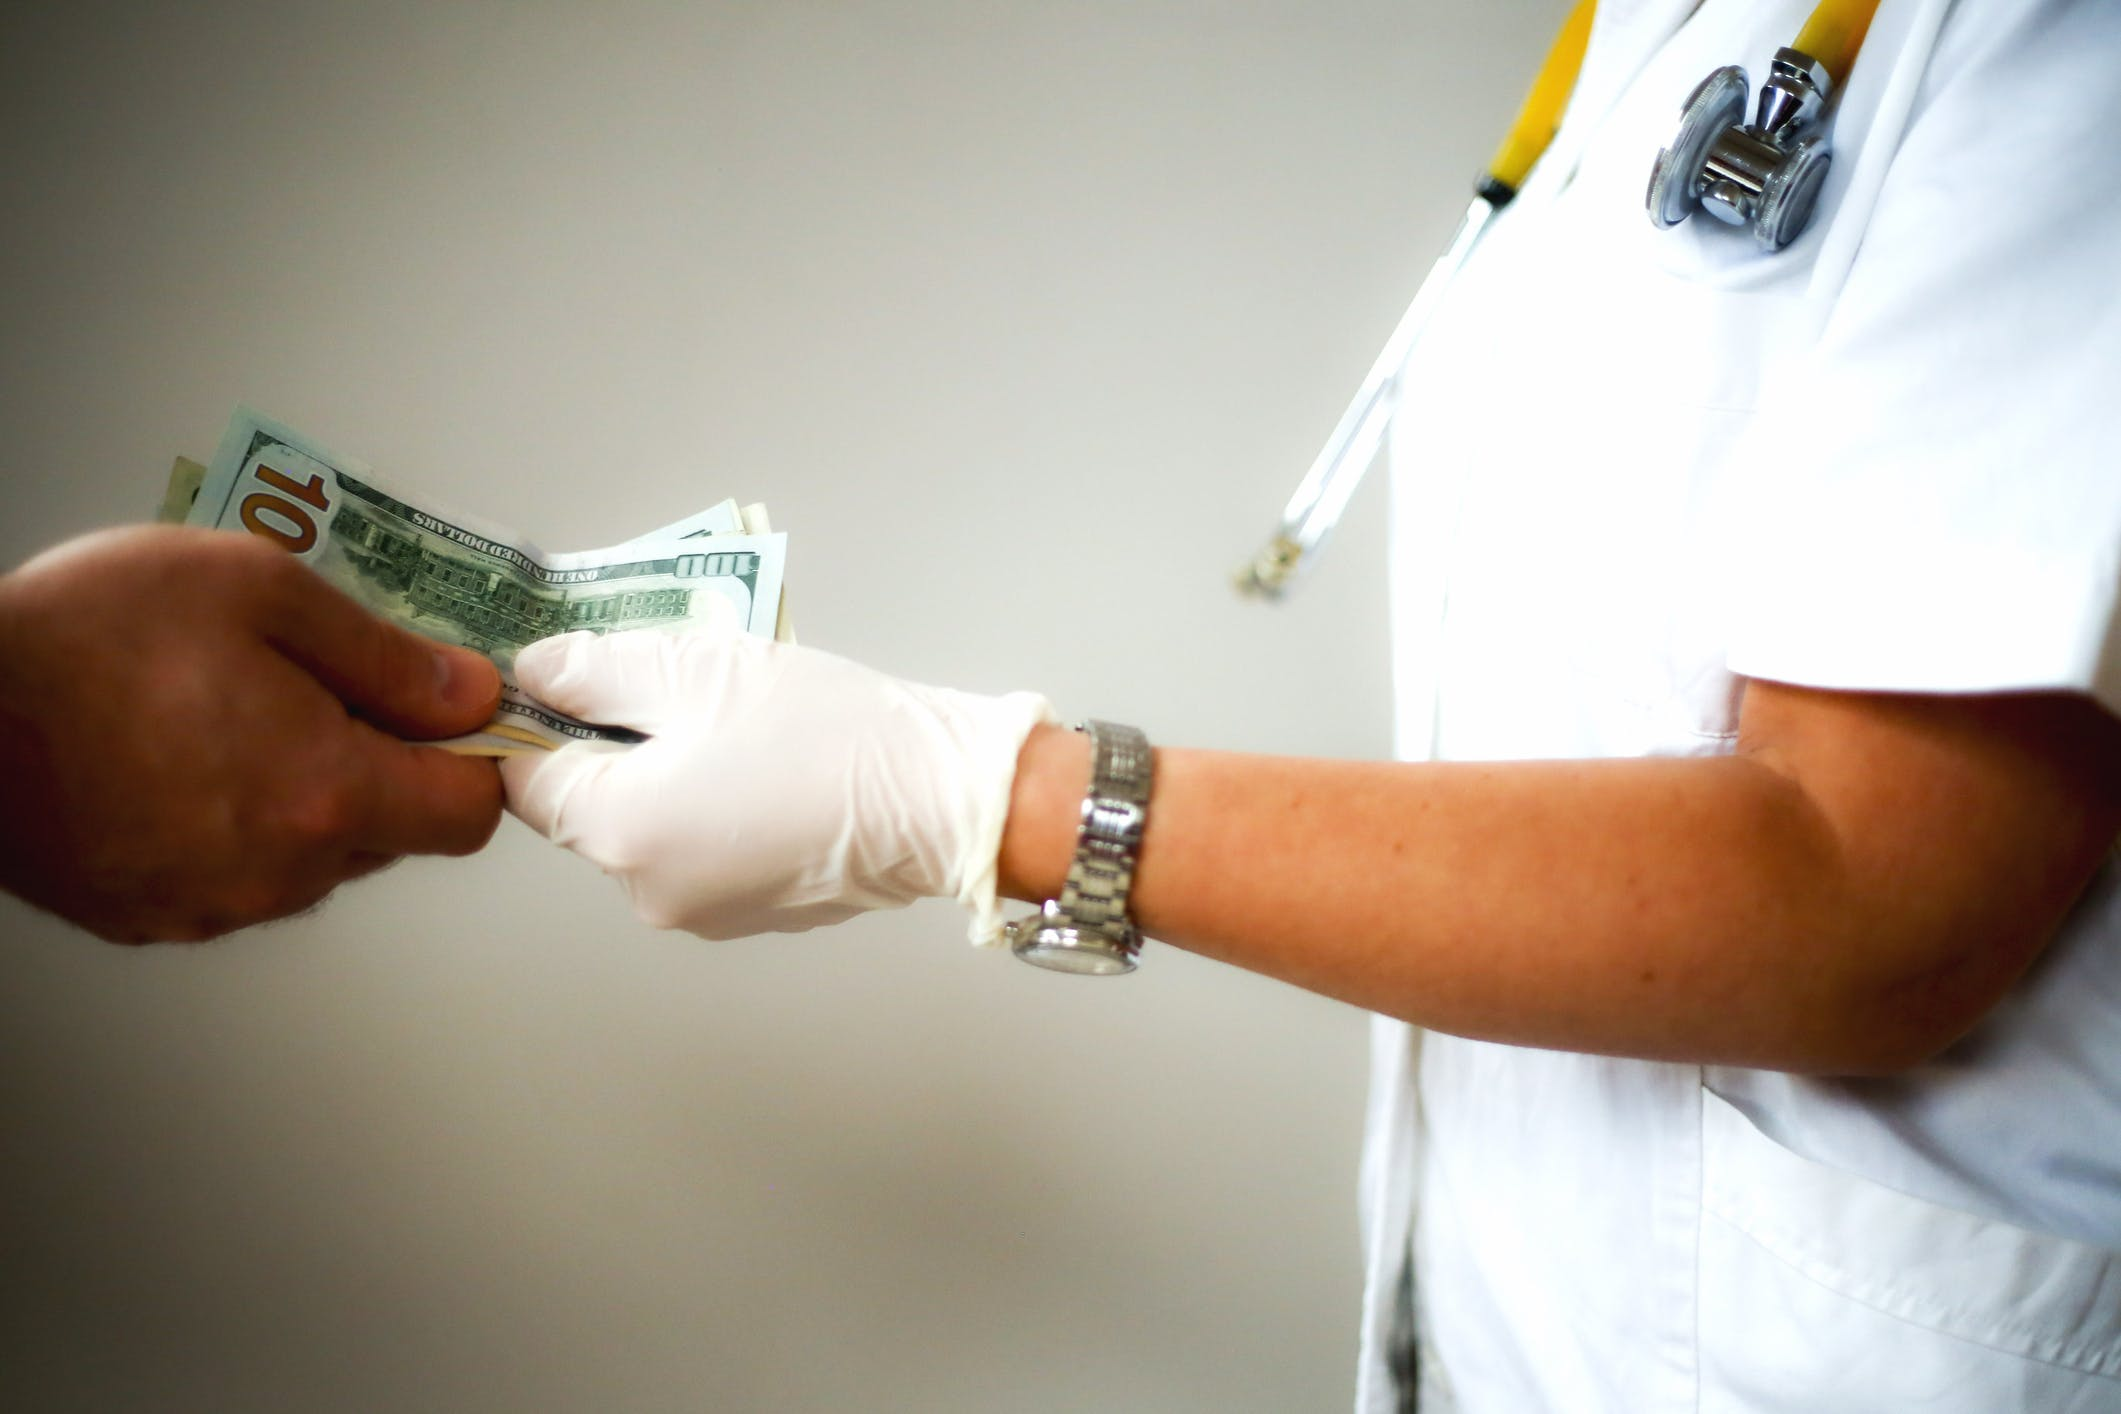 Doctor in white coat with stethoskop is offered money